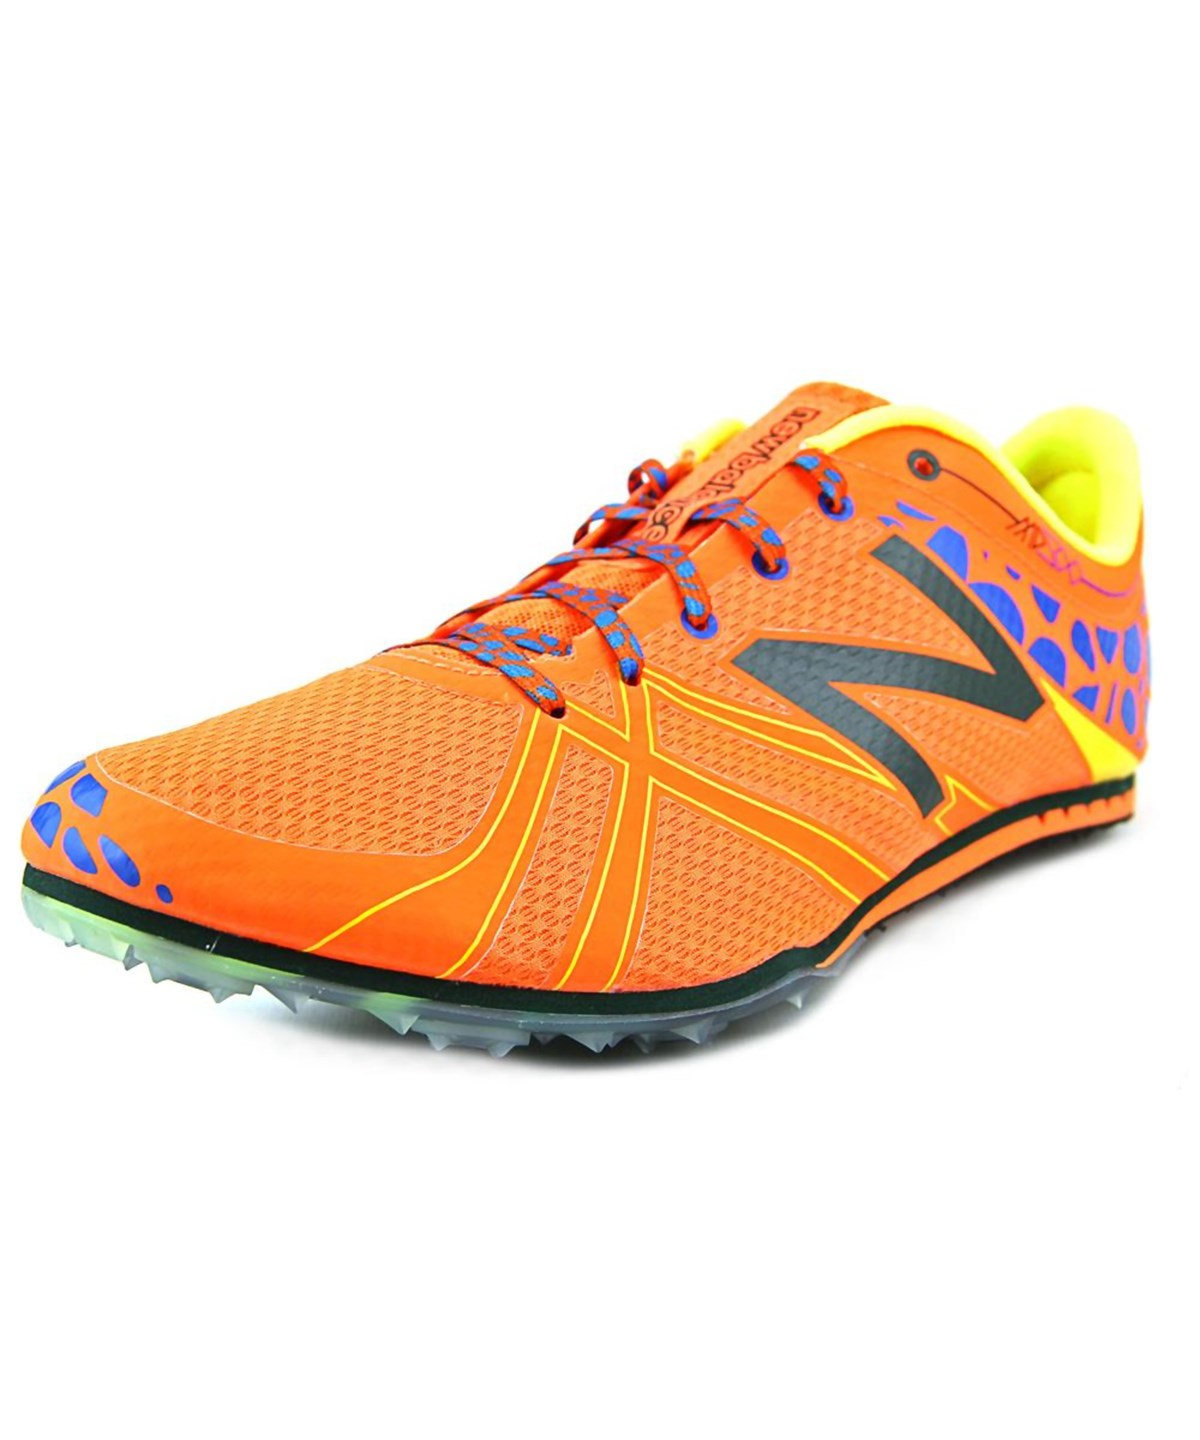 New Balance Mmd500   Round Toe Synthetic  Cleats In Orange